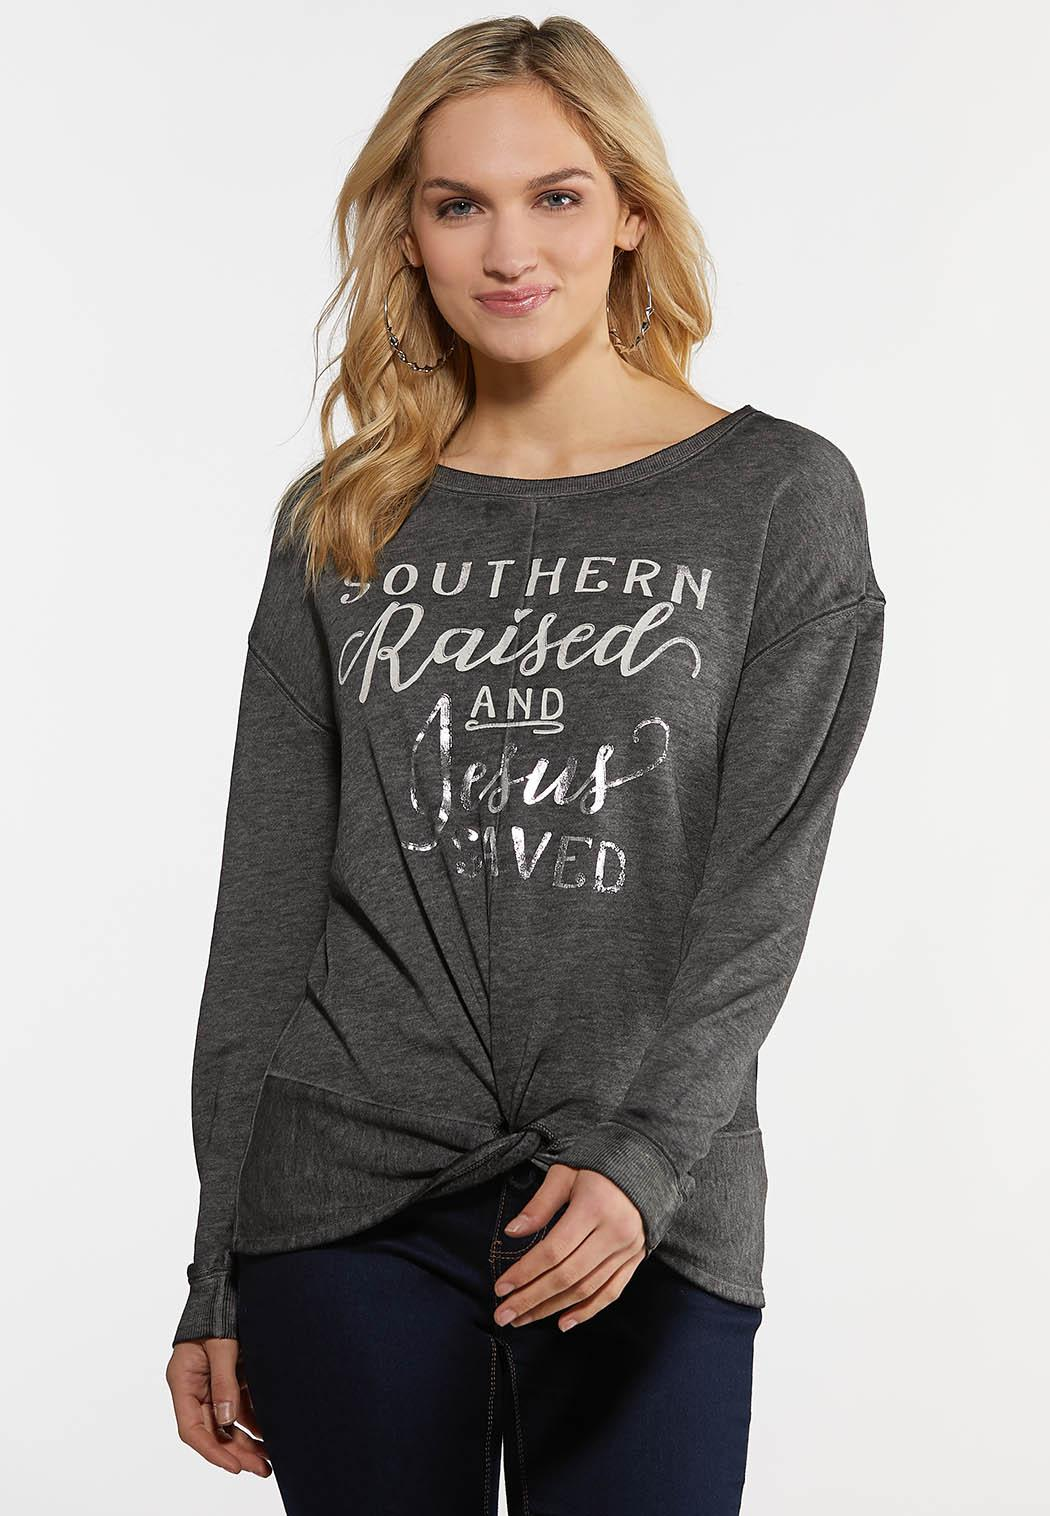 Southern Girl Top